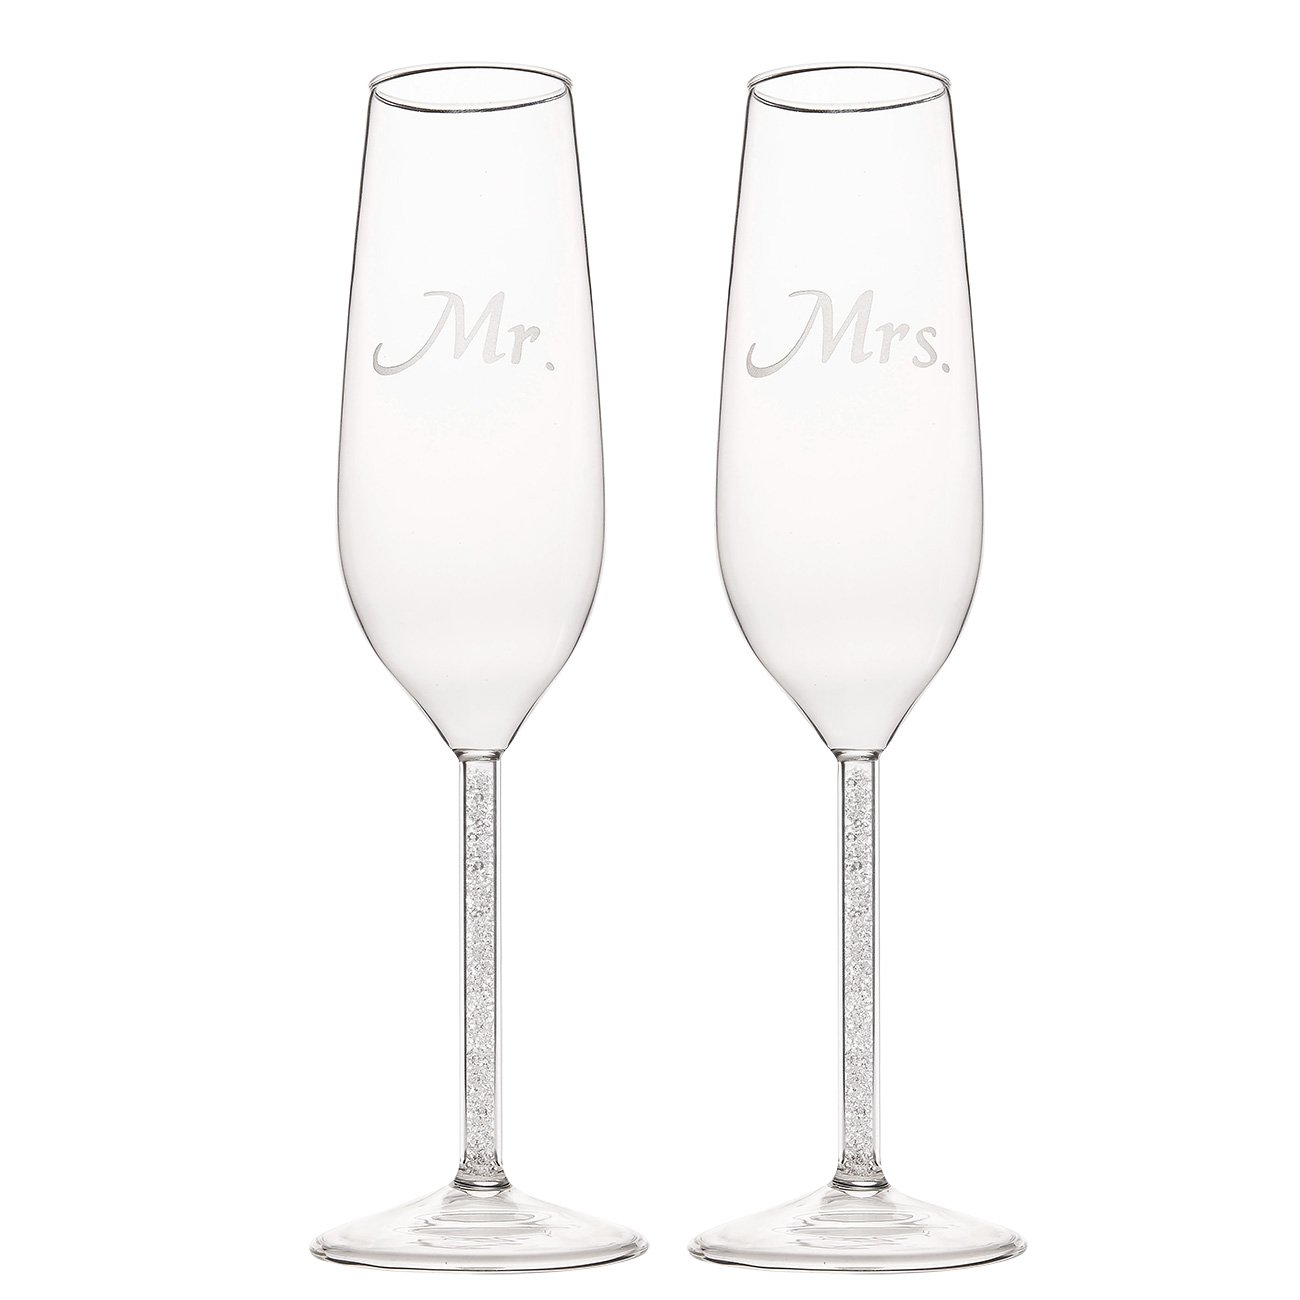 Set of 2 Wedding Champagne Flute Glasses - Mr and Mrs Toasting Engraved Flute, Pair Decorative Drinking Glass Set for Bride and Groom, Elegant Wedding Supplies, 1.7 x 2.7 x 9.5 Inches Juvale